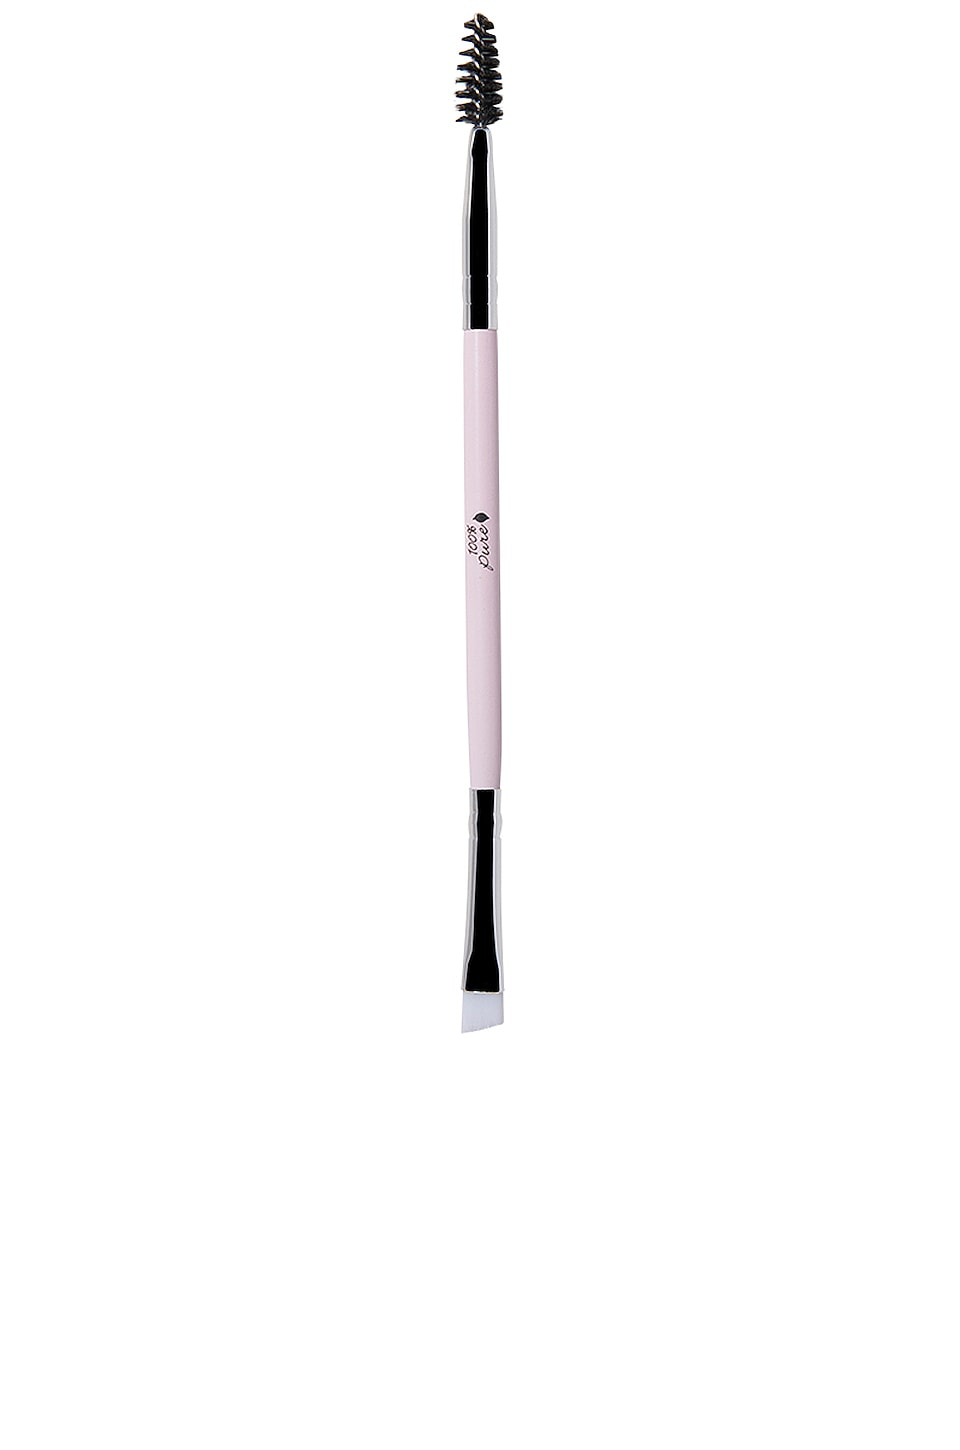 100% Pure Dual Ended Eyebrow Brush